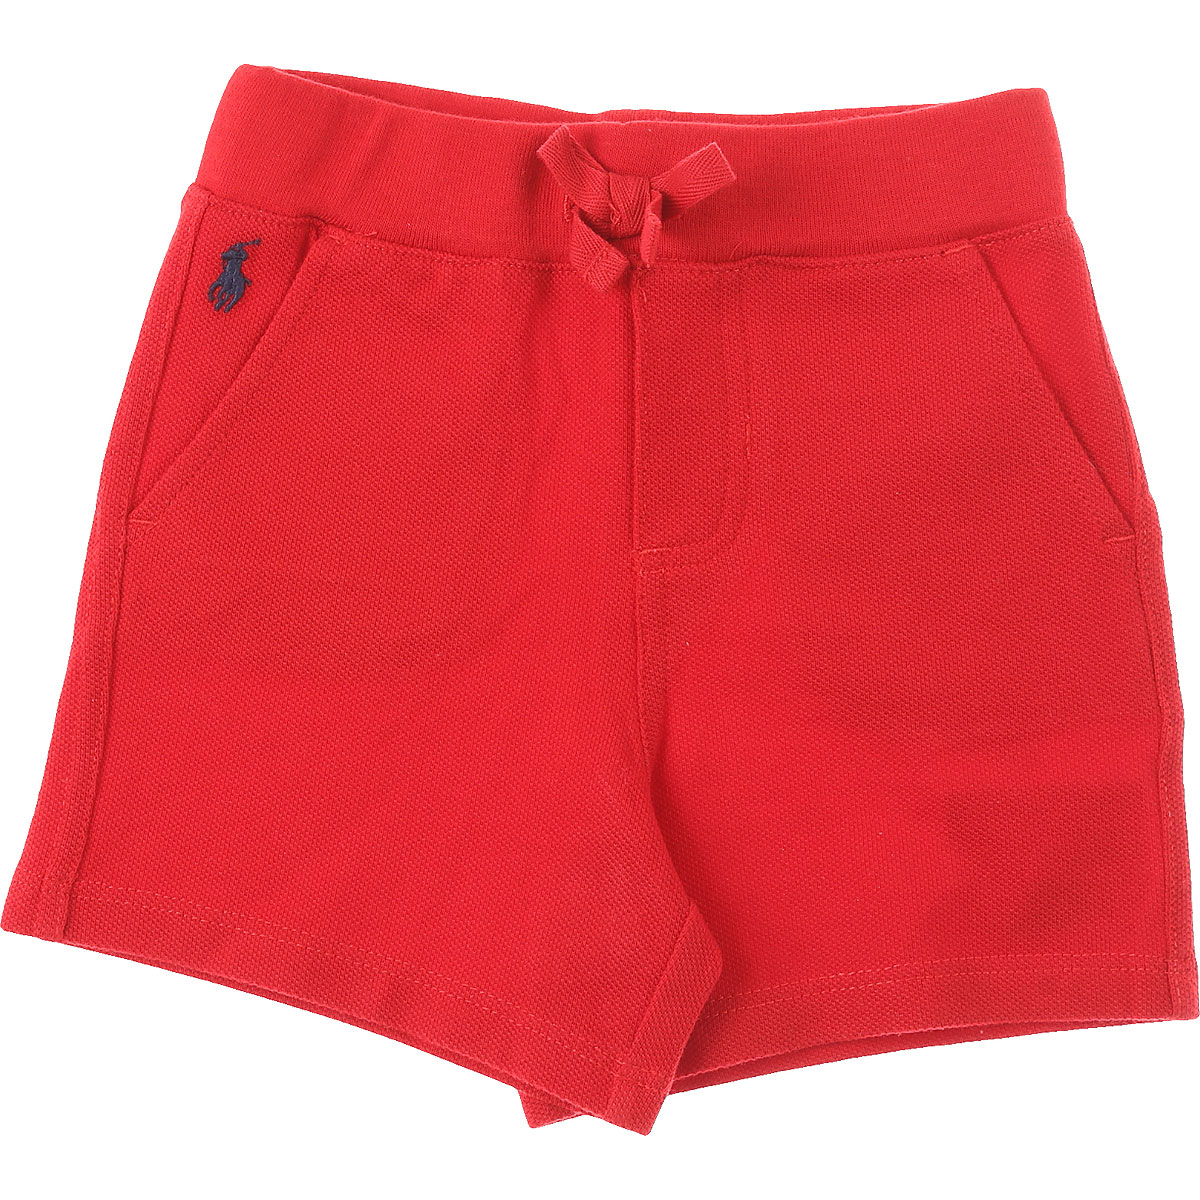 Ralph Lauren Baby Shorts for Boys On Sale, Red, Cotton, 2019, 12 M 18 M 2Y 6M 9 M